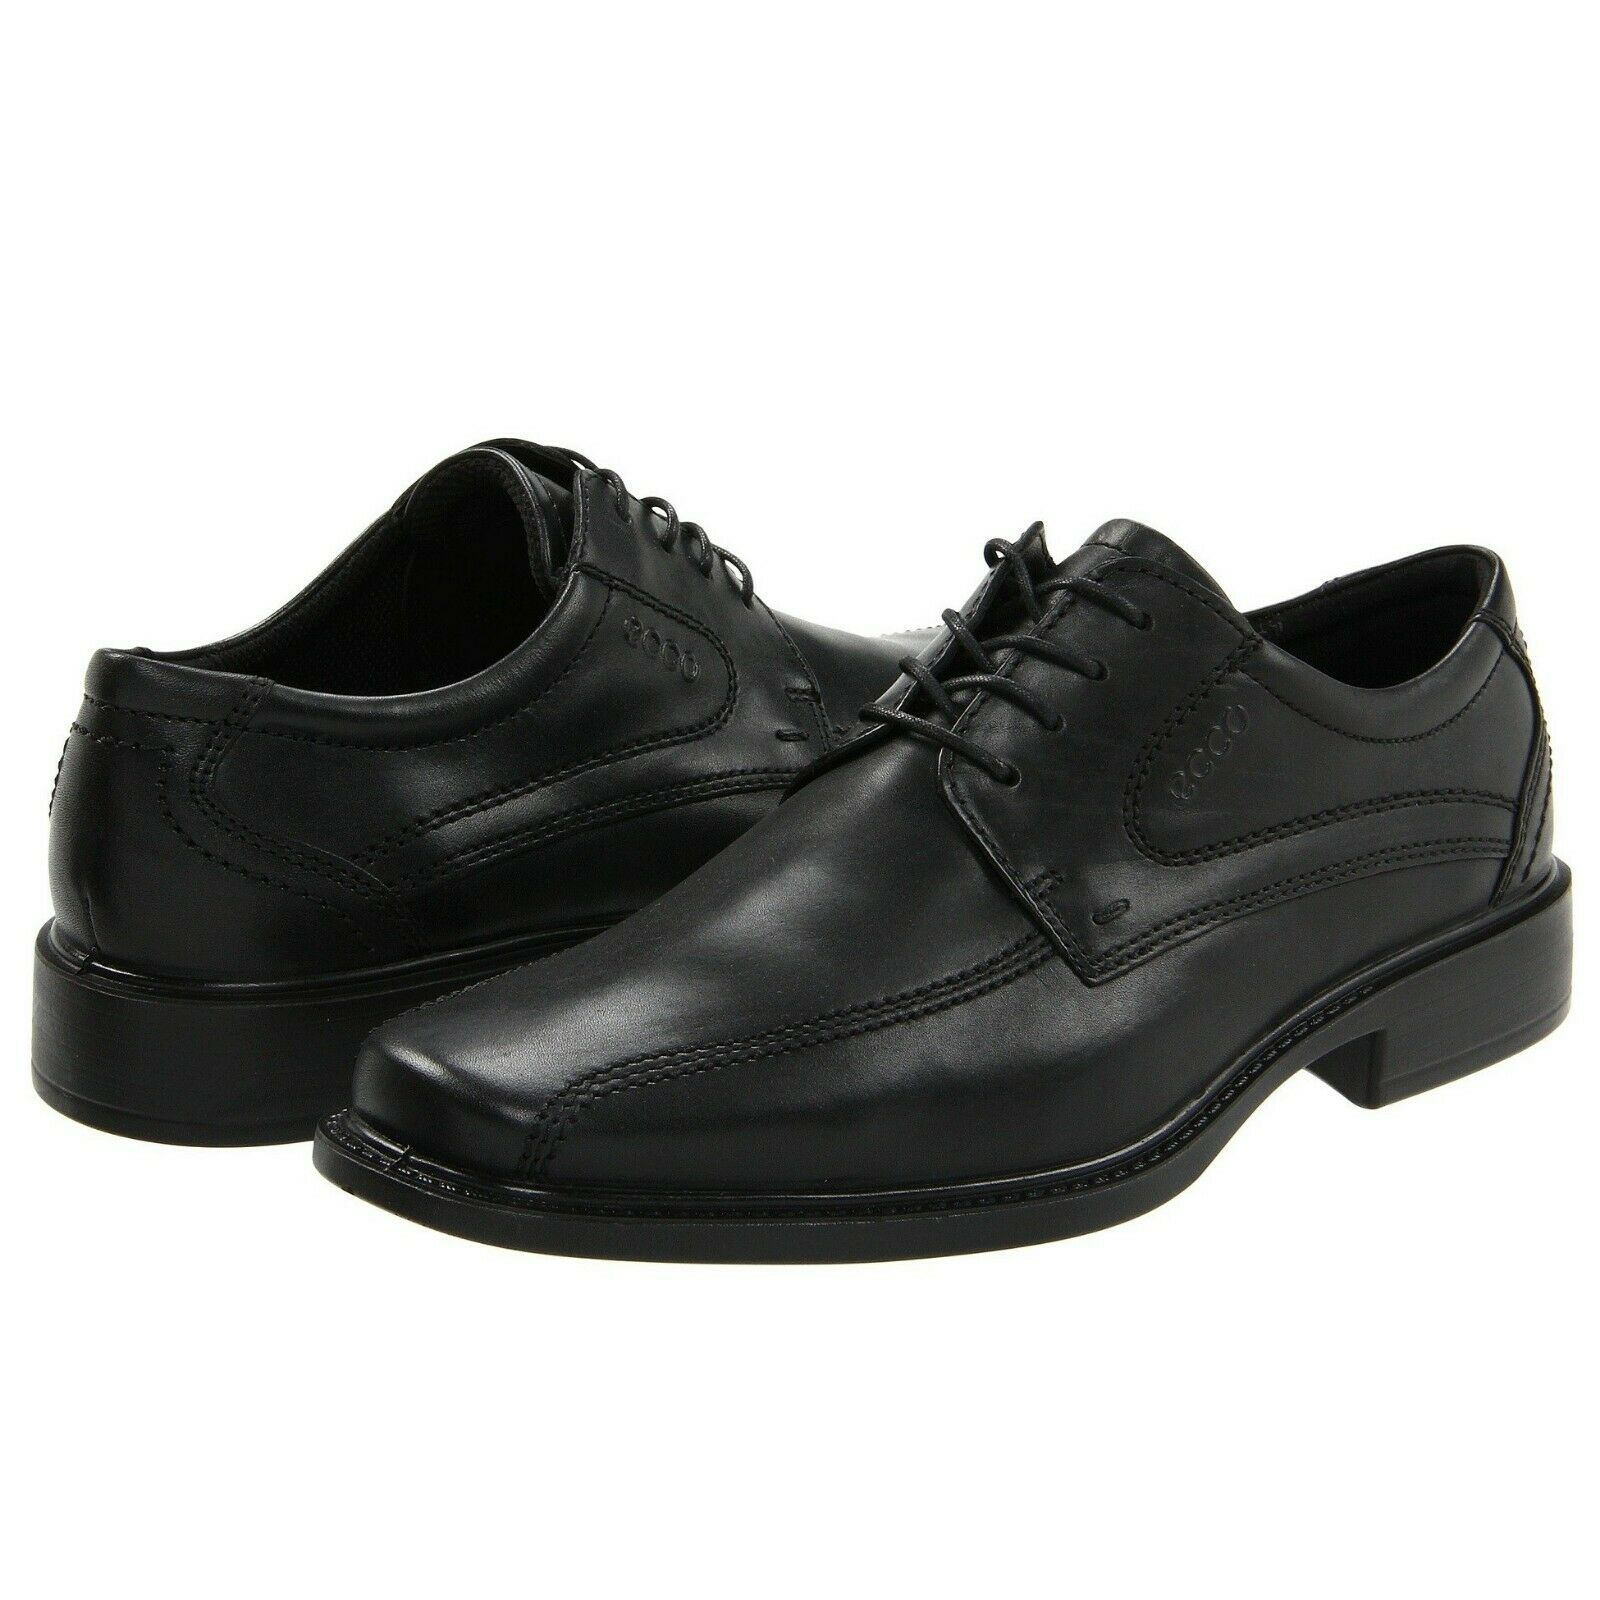 Ecco Men's New Jersey Bike Toe Lace Oxford Leather Dress Comfort Shoe Black